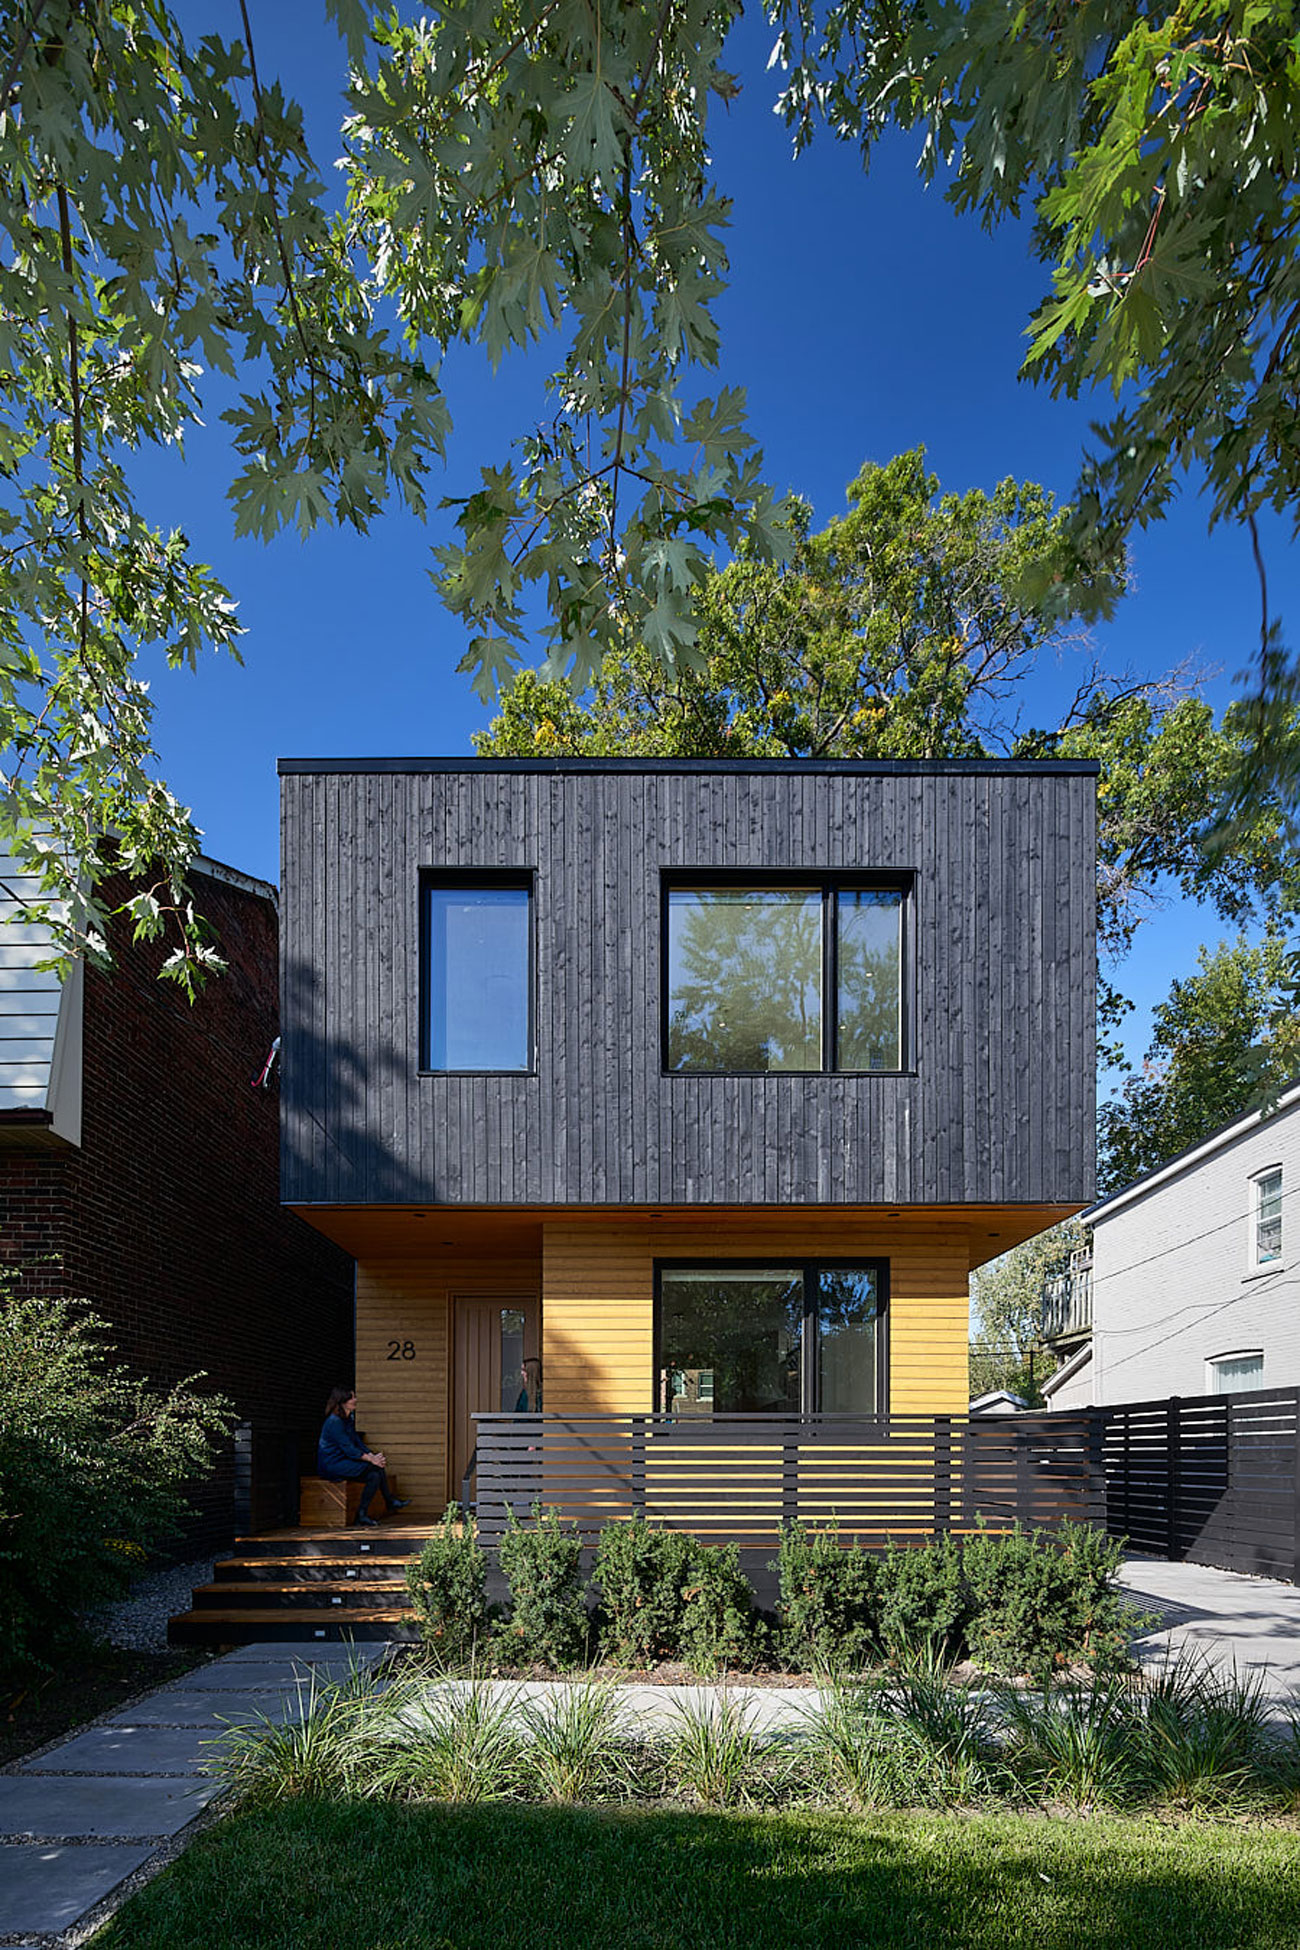 Black Wood Cladding Toronto Designlines Black Timber House Shou Sugi Ban House Charred Wood DPO Architecture